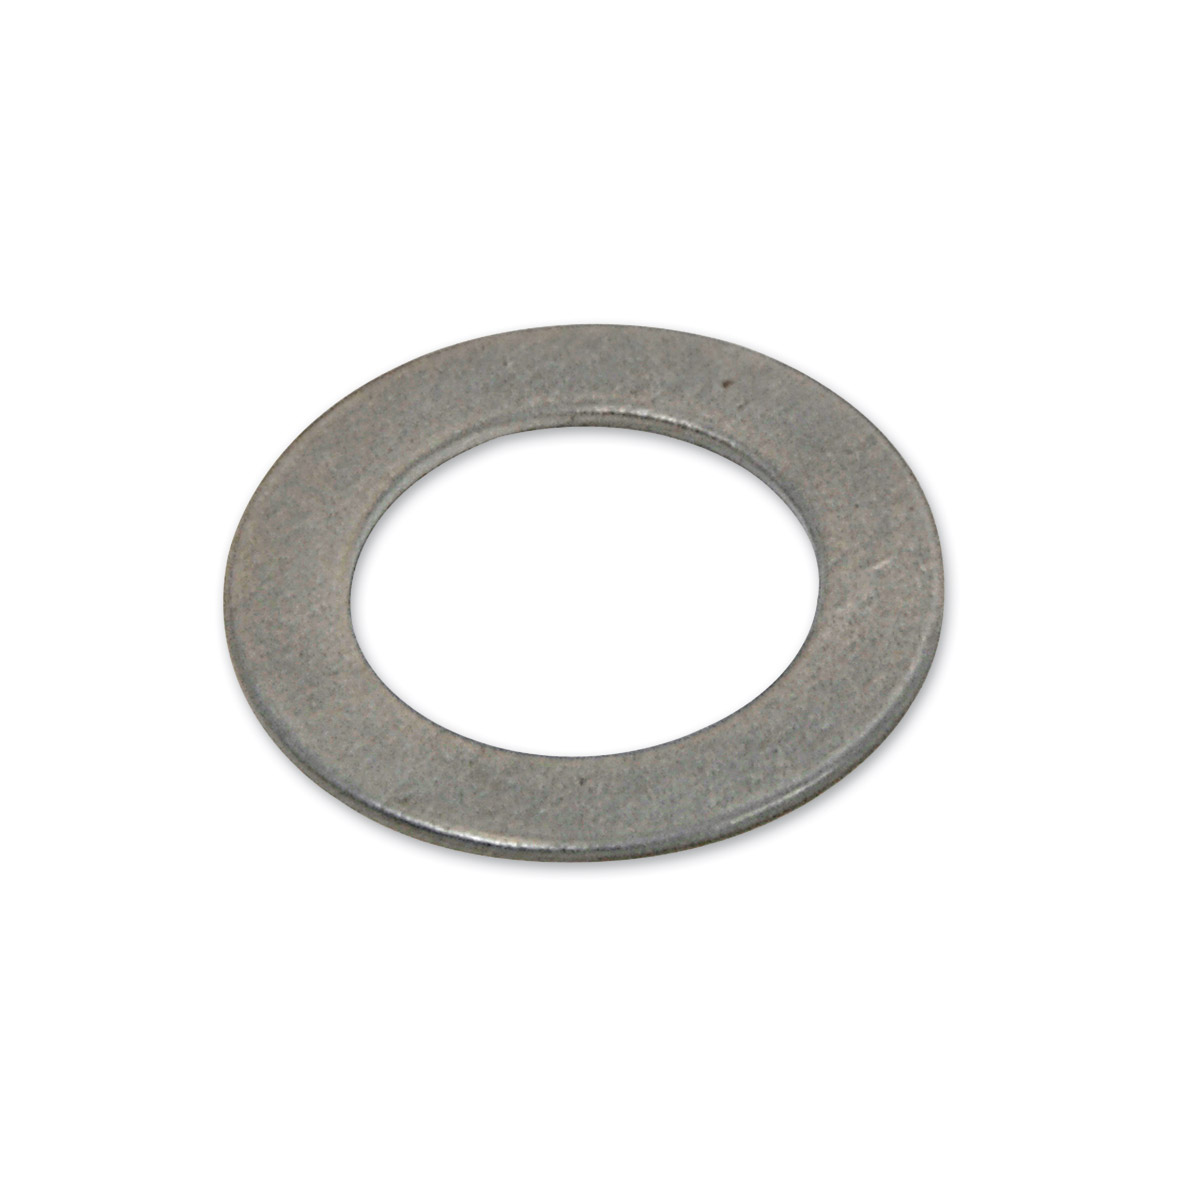 Eastern Motorcycle Parts Transmission Shift Lever Shim